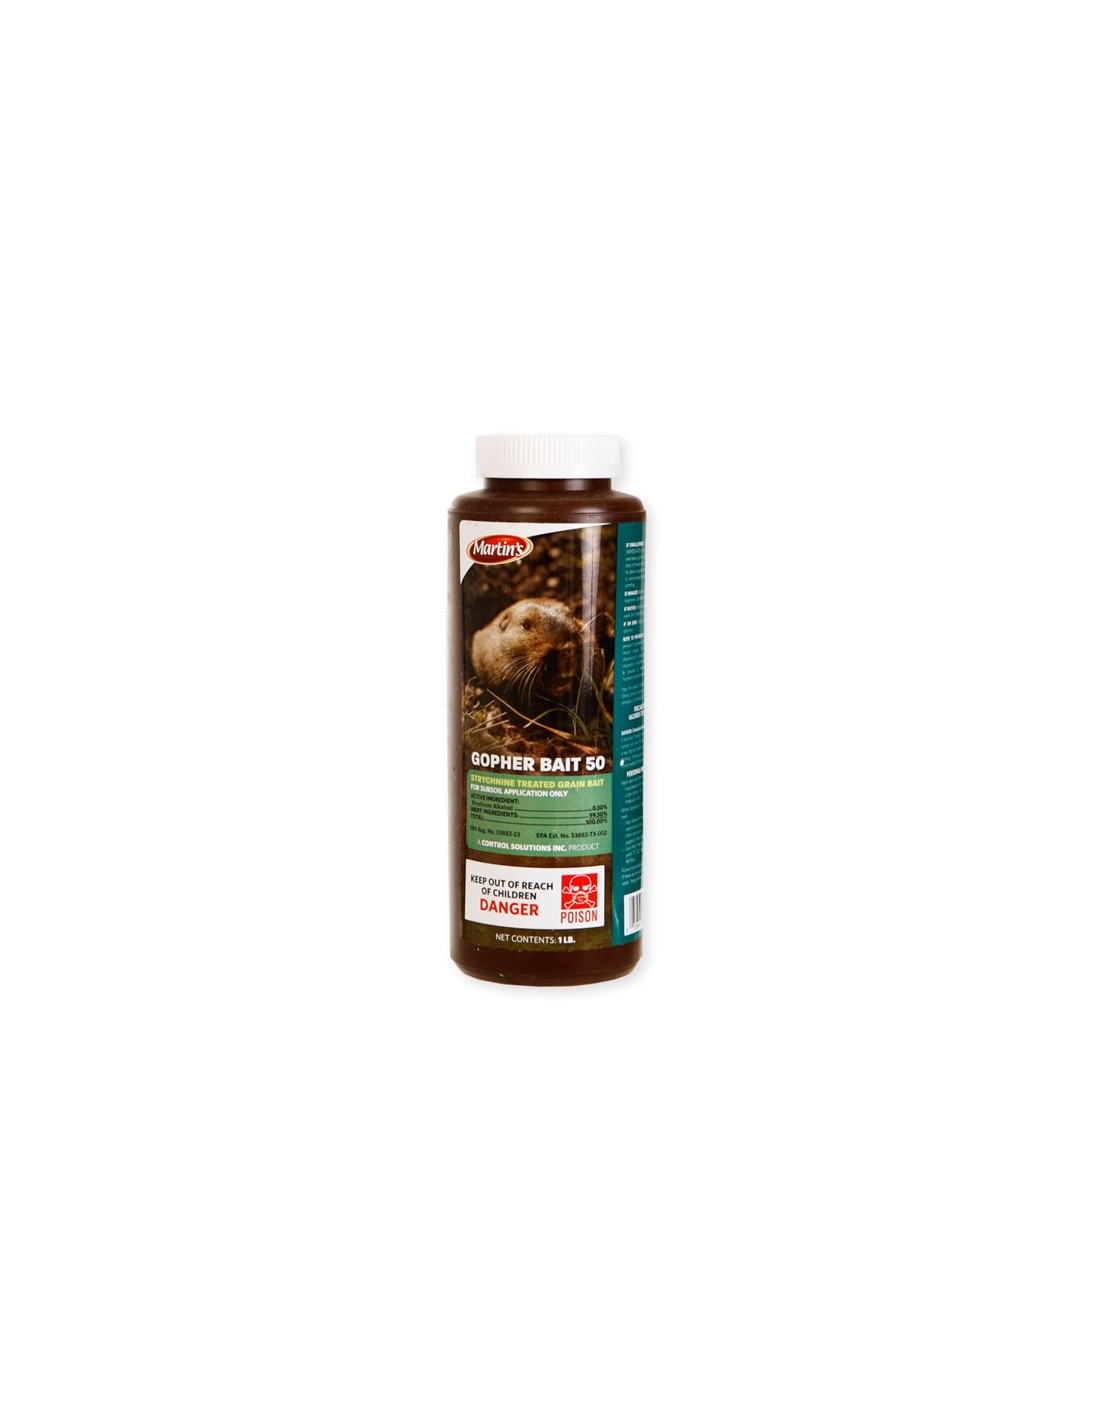 Is Martin's gopher bait 50 effective on moles?